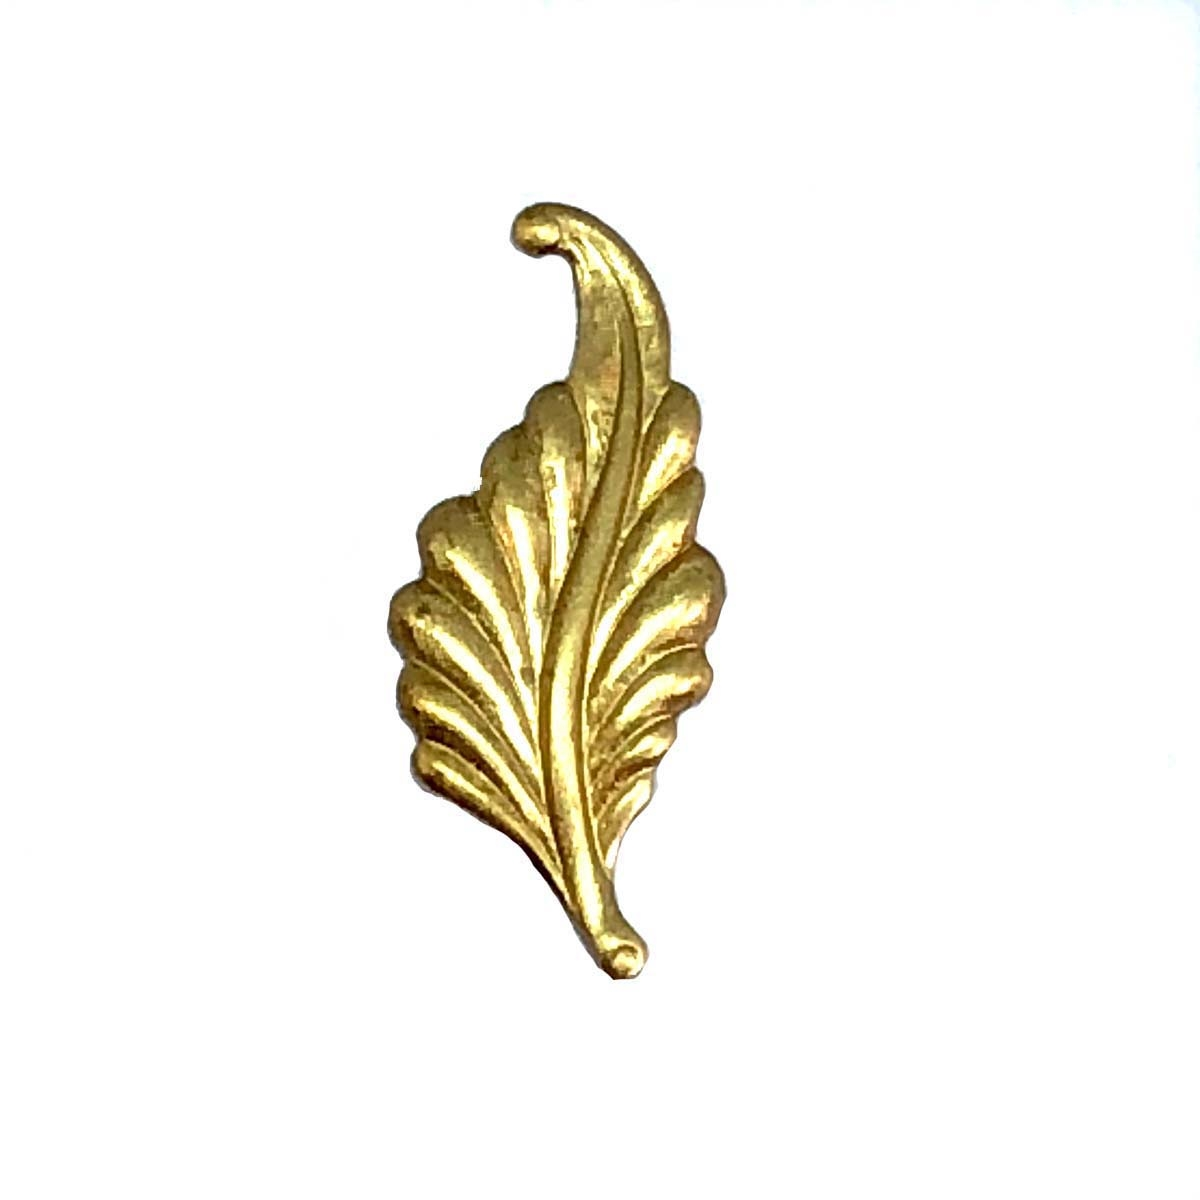 curved style leaf stamping, brass stamping, curved style, left facing, raw brass, unplated brass, antique brass, brass, B'sue Boutiques, US made, jewelry findings, jewelry supplies, leaf findings, jewelry making, vintage supplies, leaf, 31mm, 06263